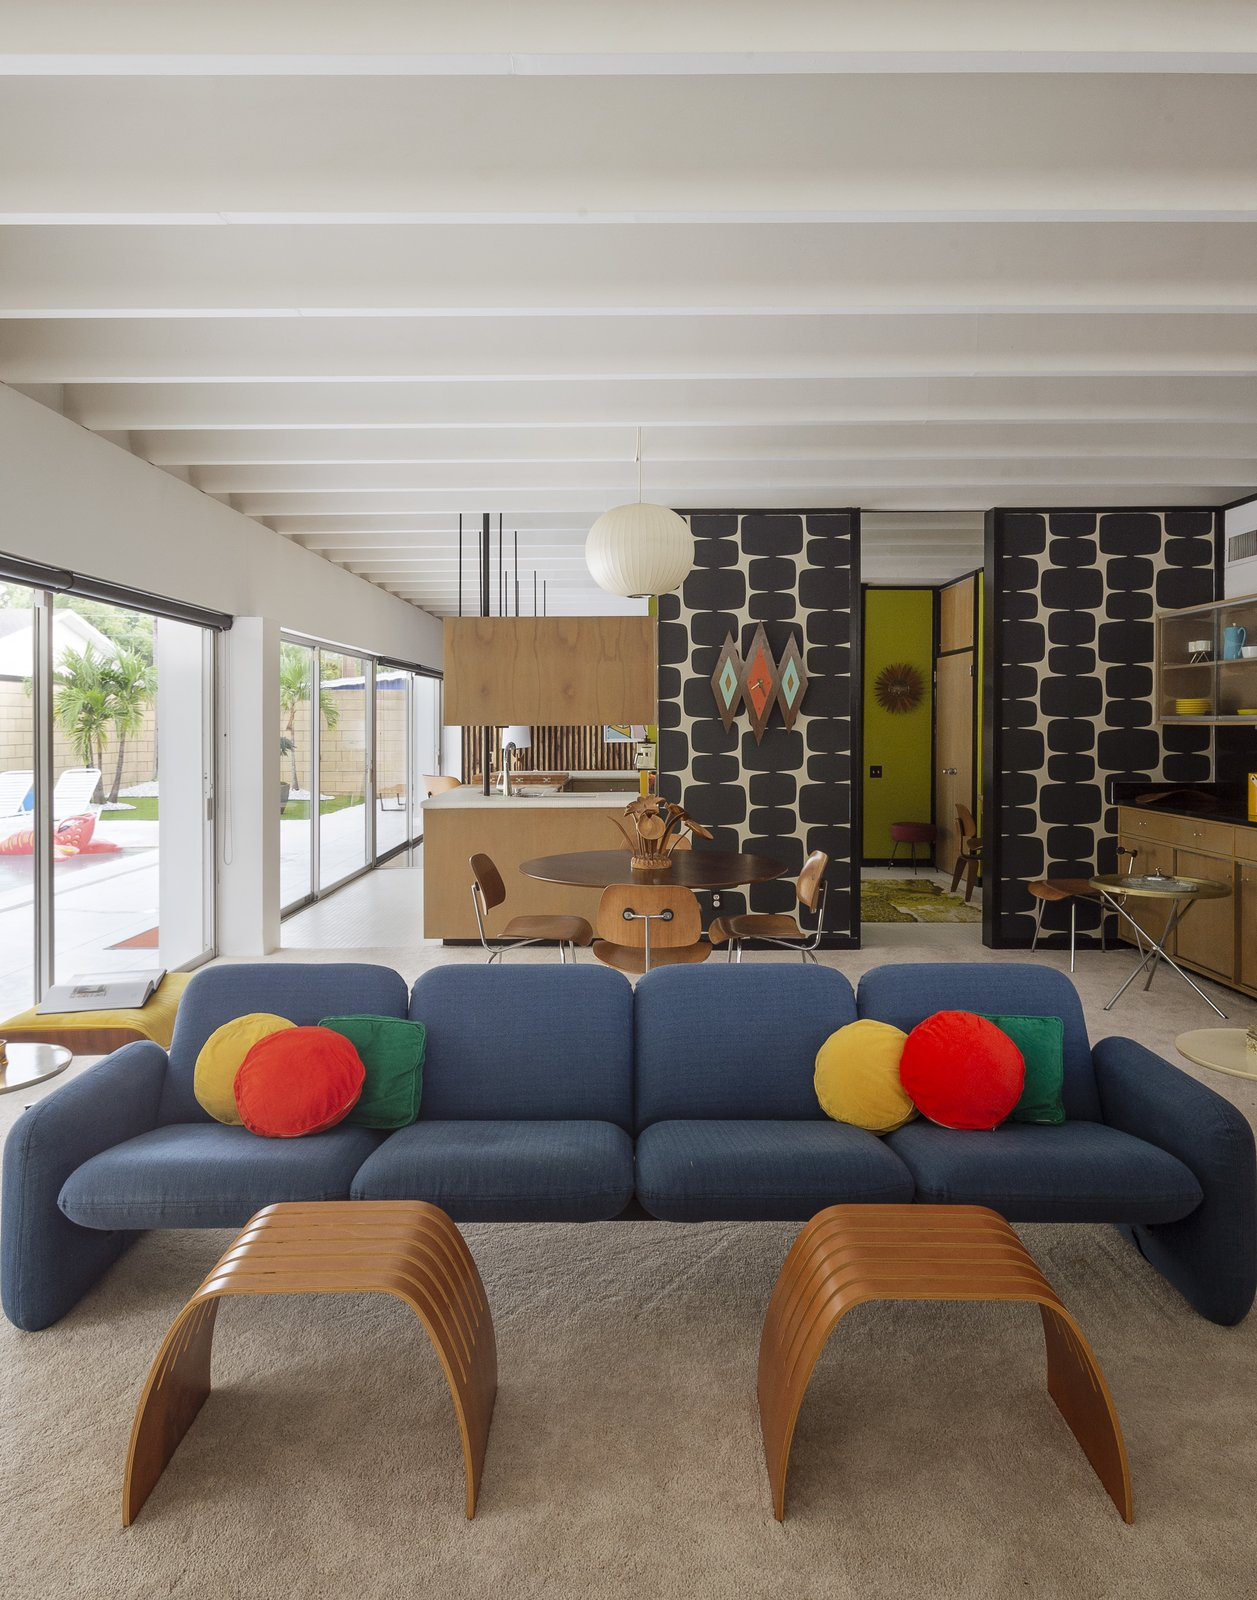 Living Room, Chair, Table, Carpet Floor, Ceiling Lighting, Coffee Tables, and Sectional The living area's Chicklet sofa by Ray Wilkes is covered in a Knoll tweed.  My Photos from Pop Art, Street Art, and Space Age Furniture Collide at a Painter's Midcentury Ranch Home in Florida